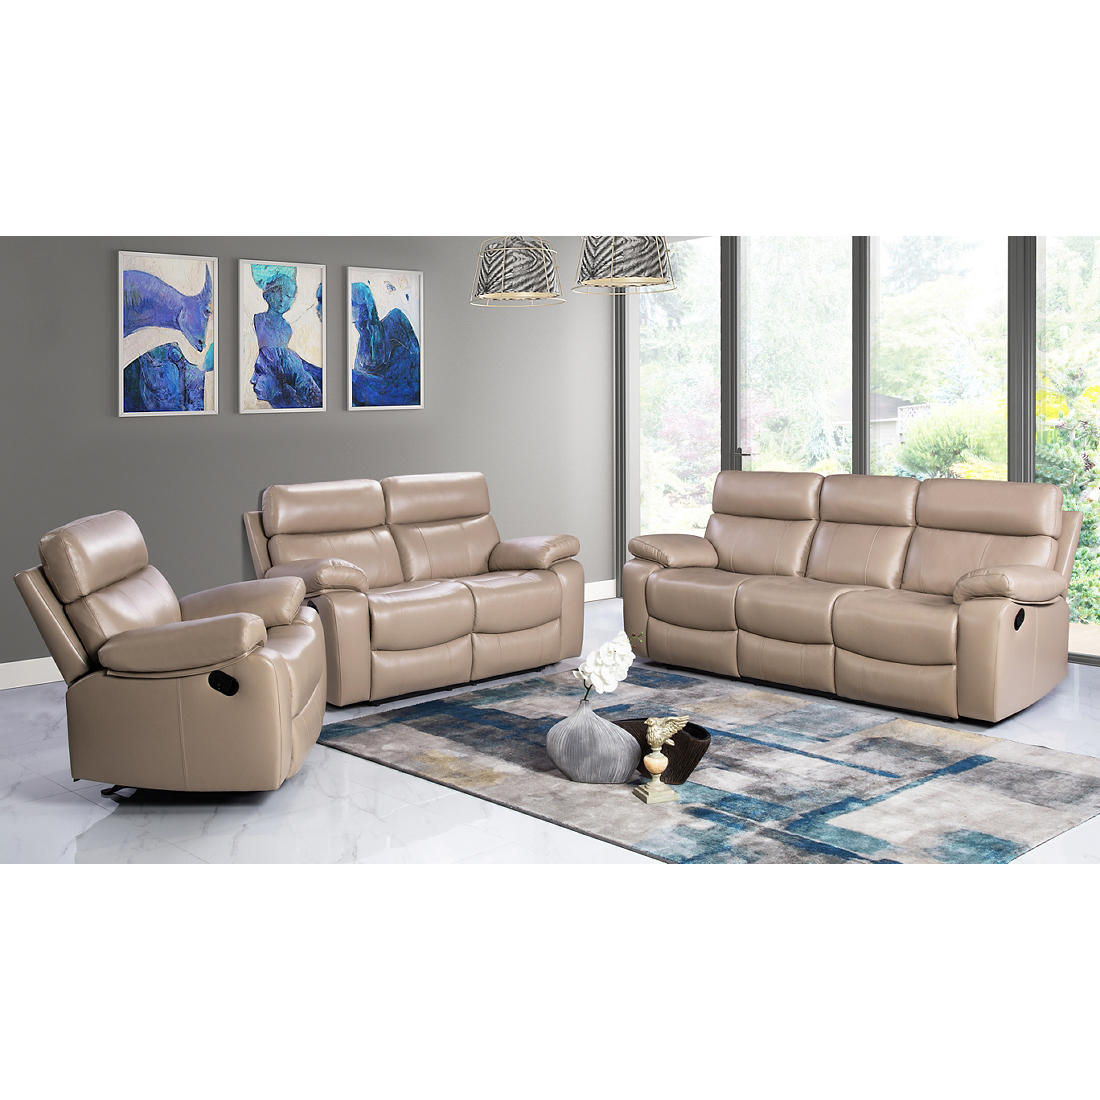 Strange Abbyson Living Franklin 3 Pc Reclining Leather Set Beige Gmtry Best Dining Table And Chair Ideas Images Gmtryco